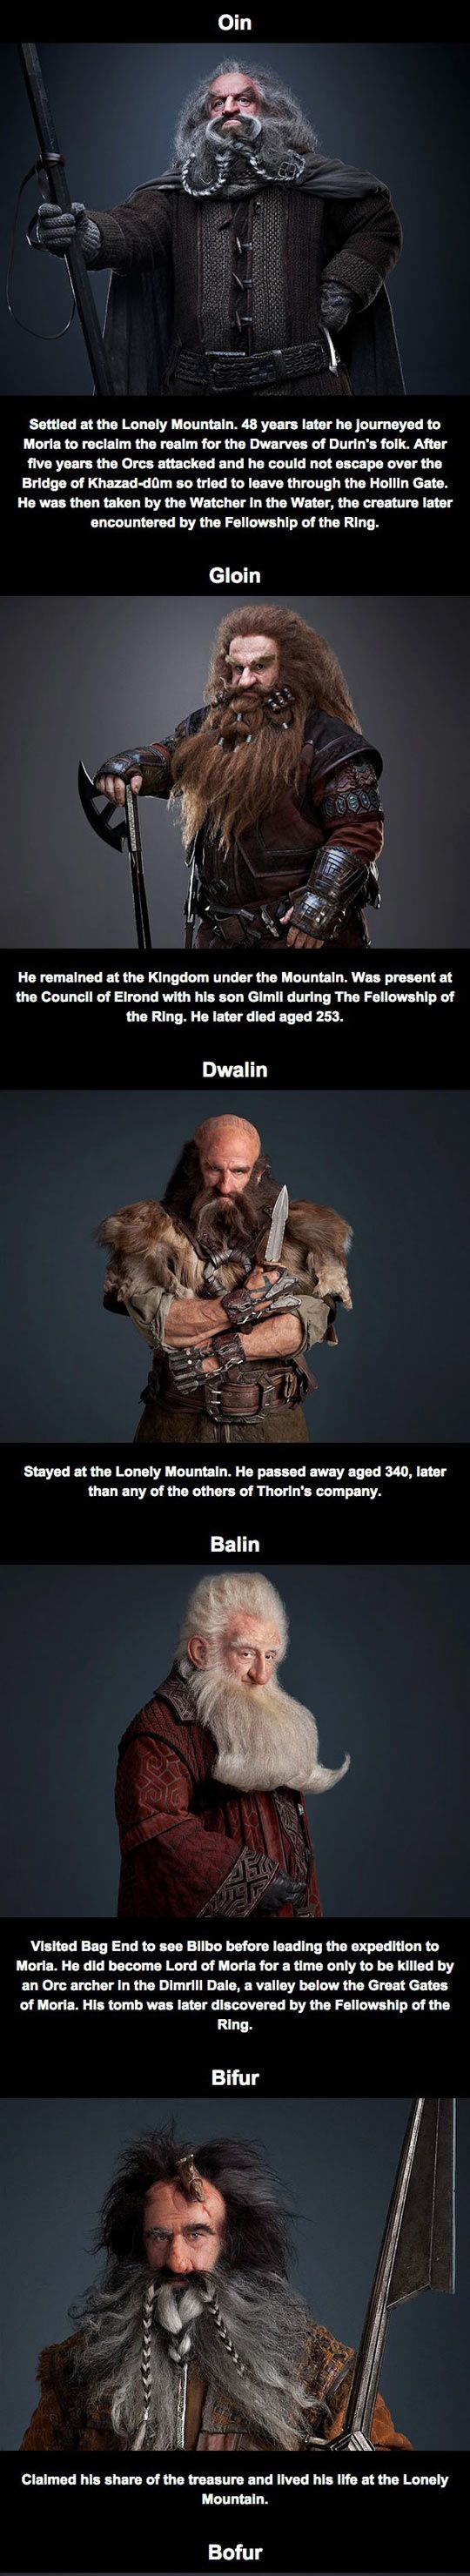 What Happened To The Other Dwarves After The Hobbit? Information taken from LOTR, Appendices and other writings.